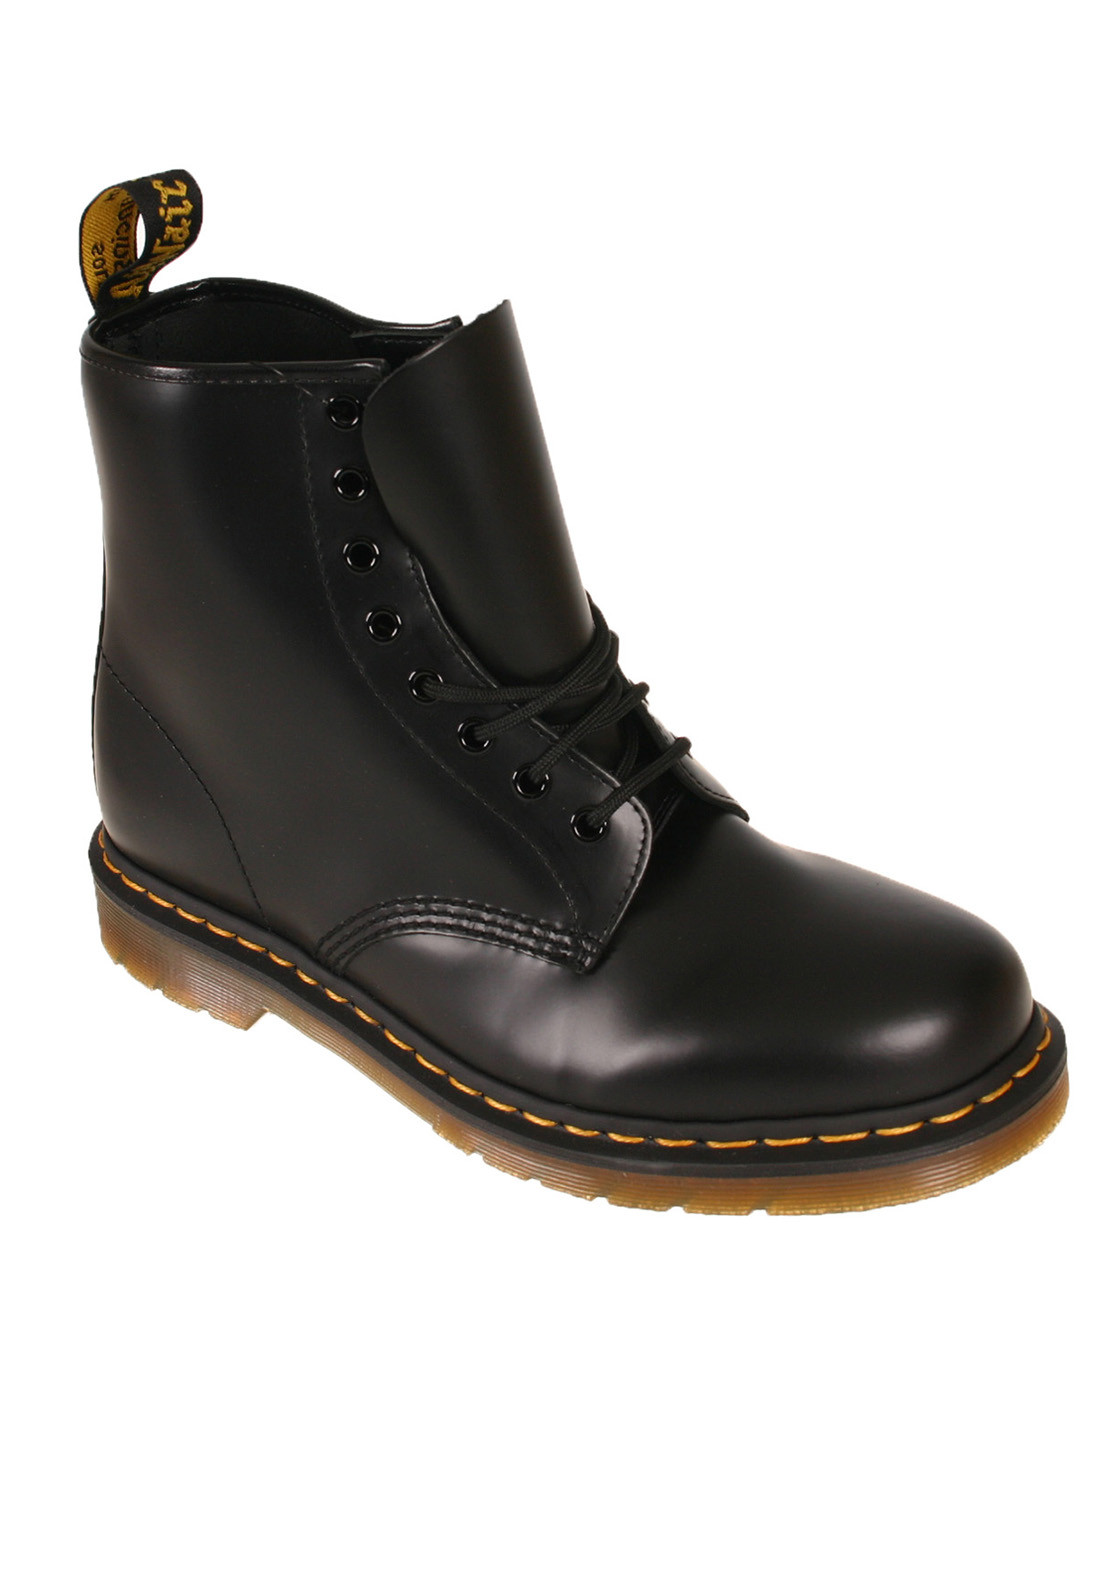 Dr. Martens AirWair Men's 1460 Leather Boots, Black